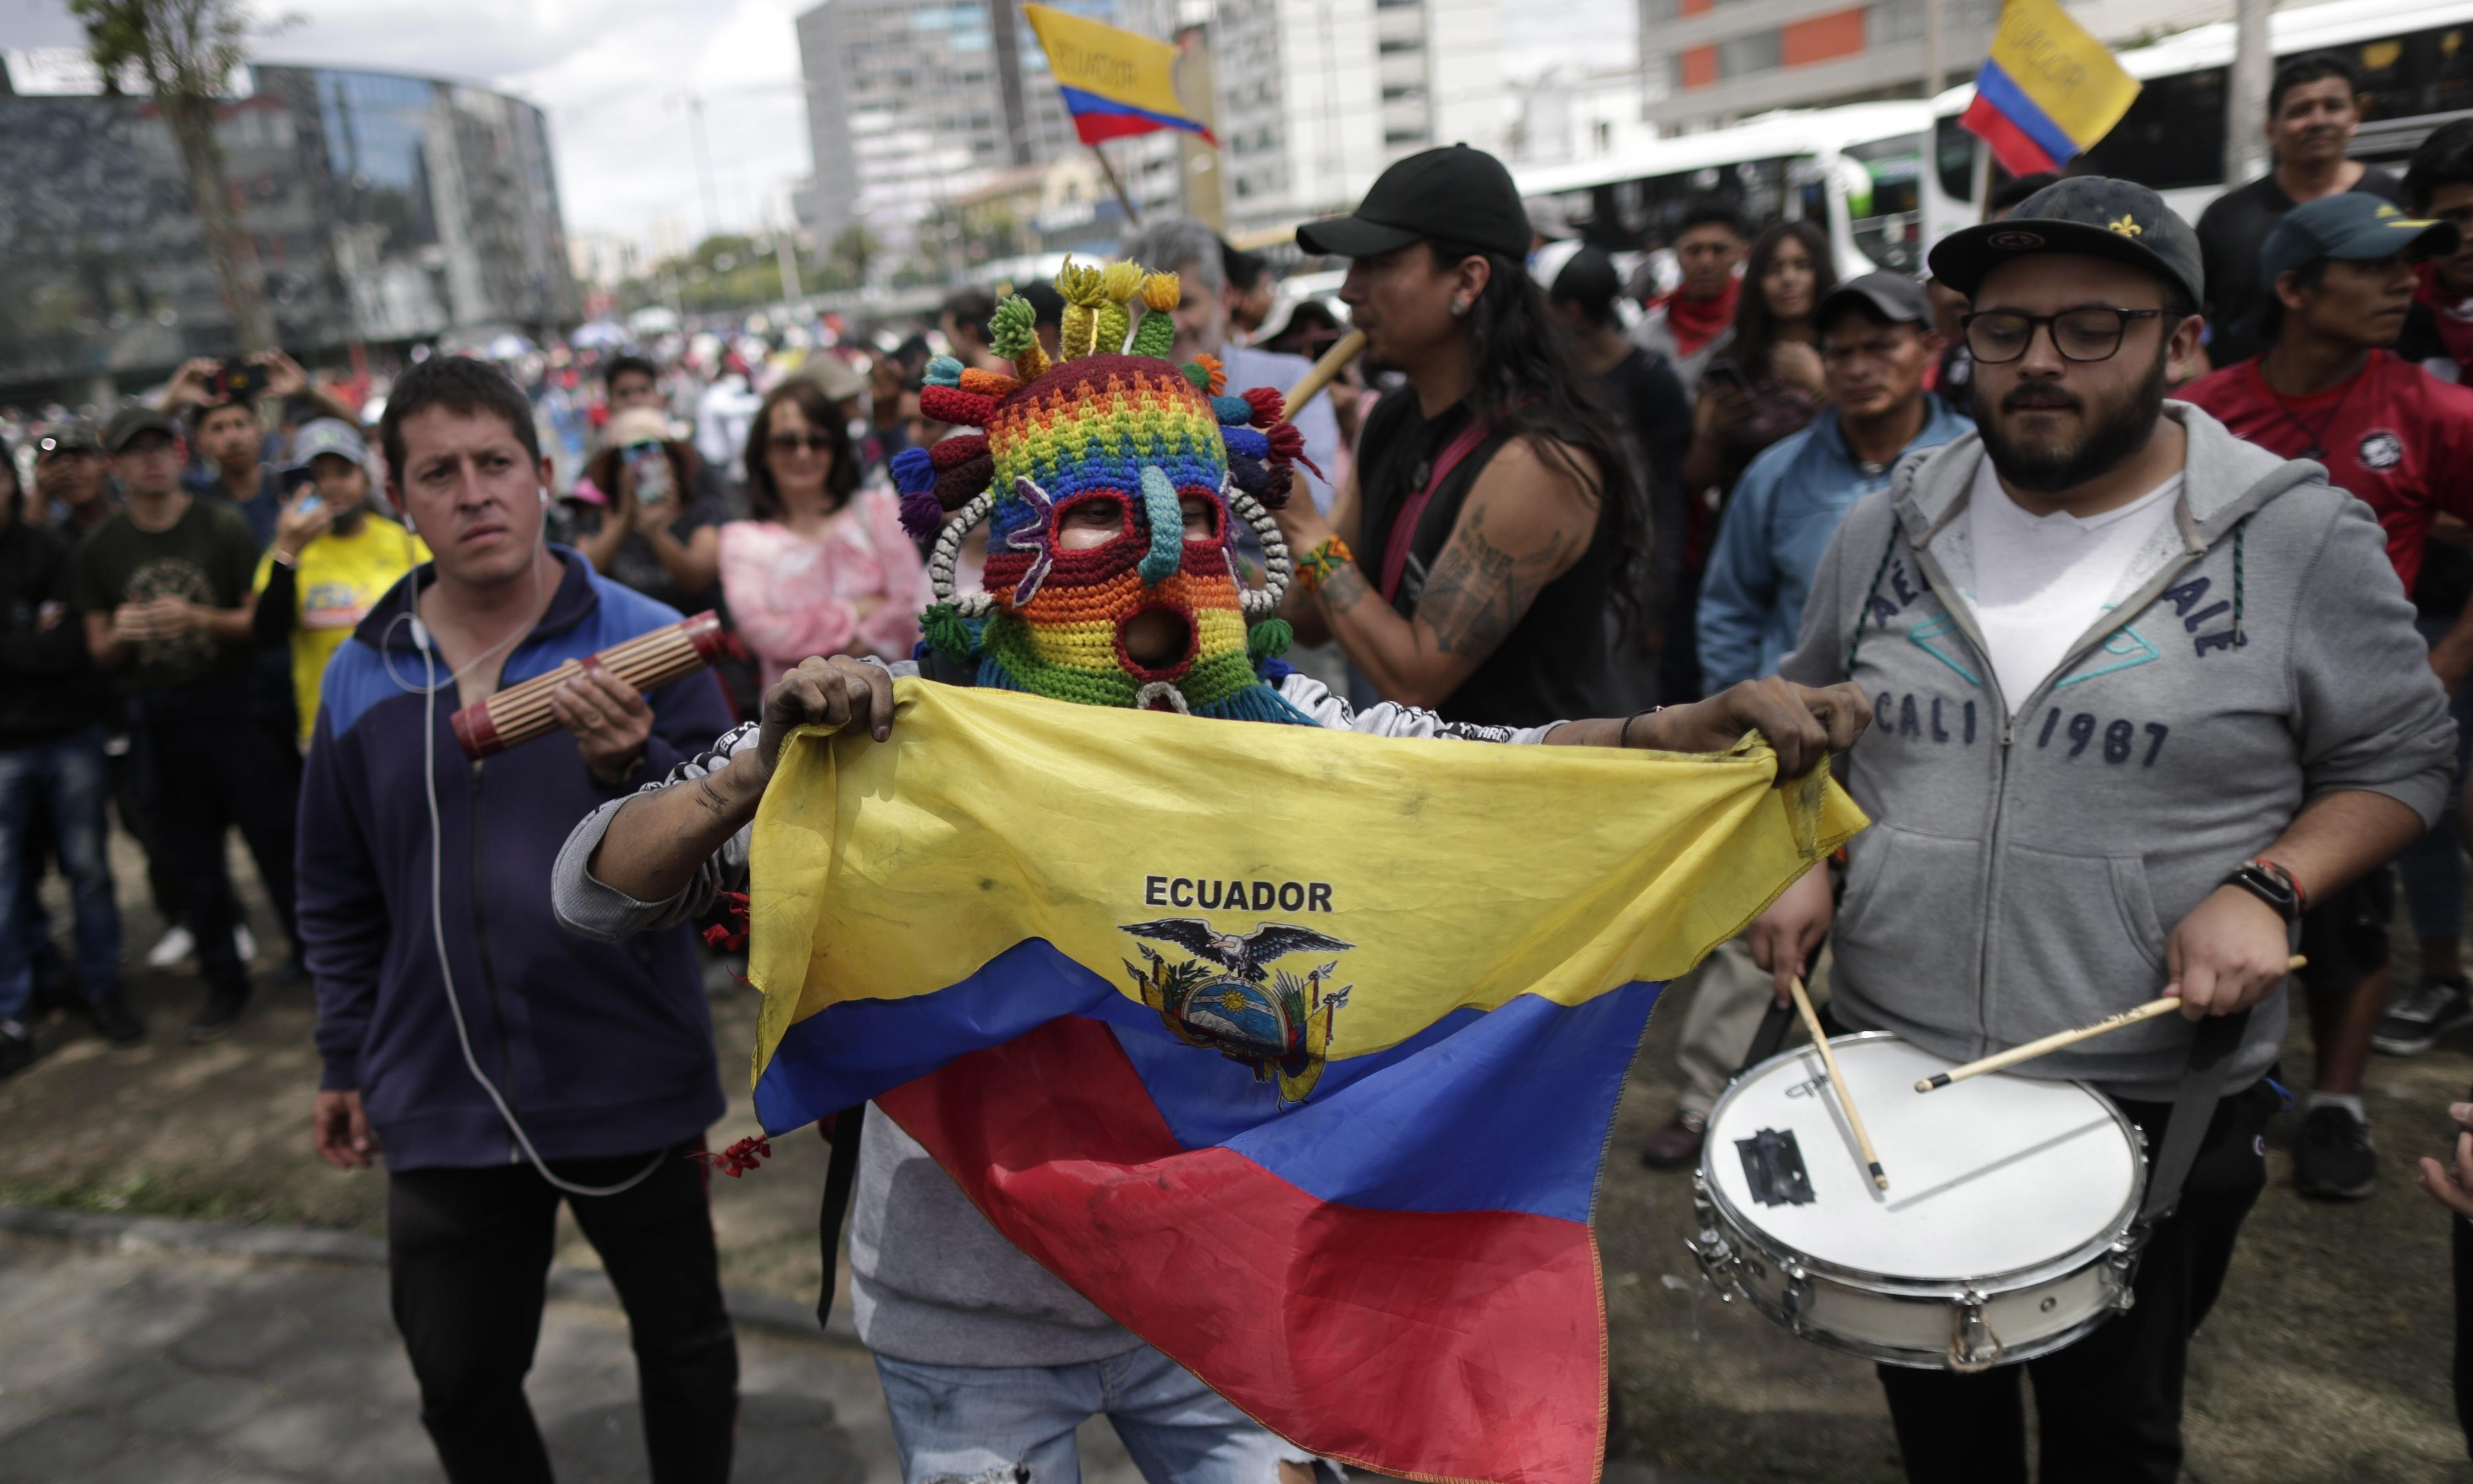 Ecuador: deal marks bittersweet win for indigenous protesters after deaths